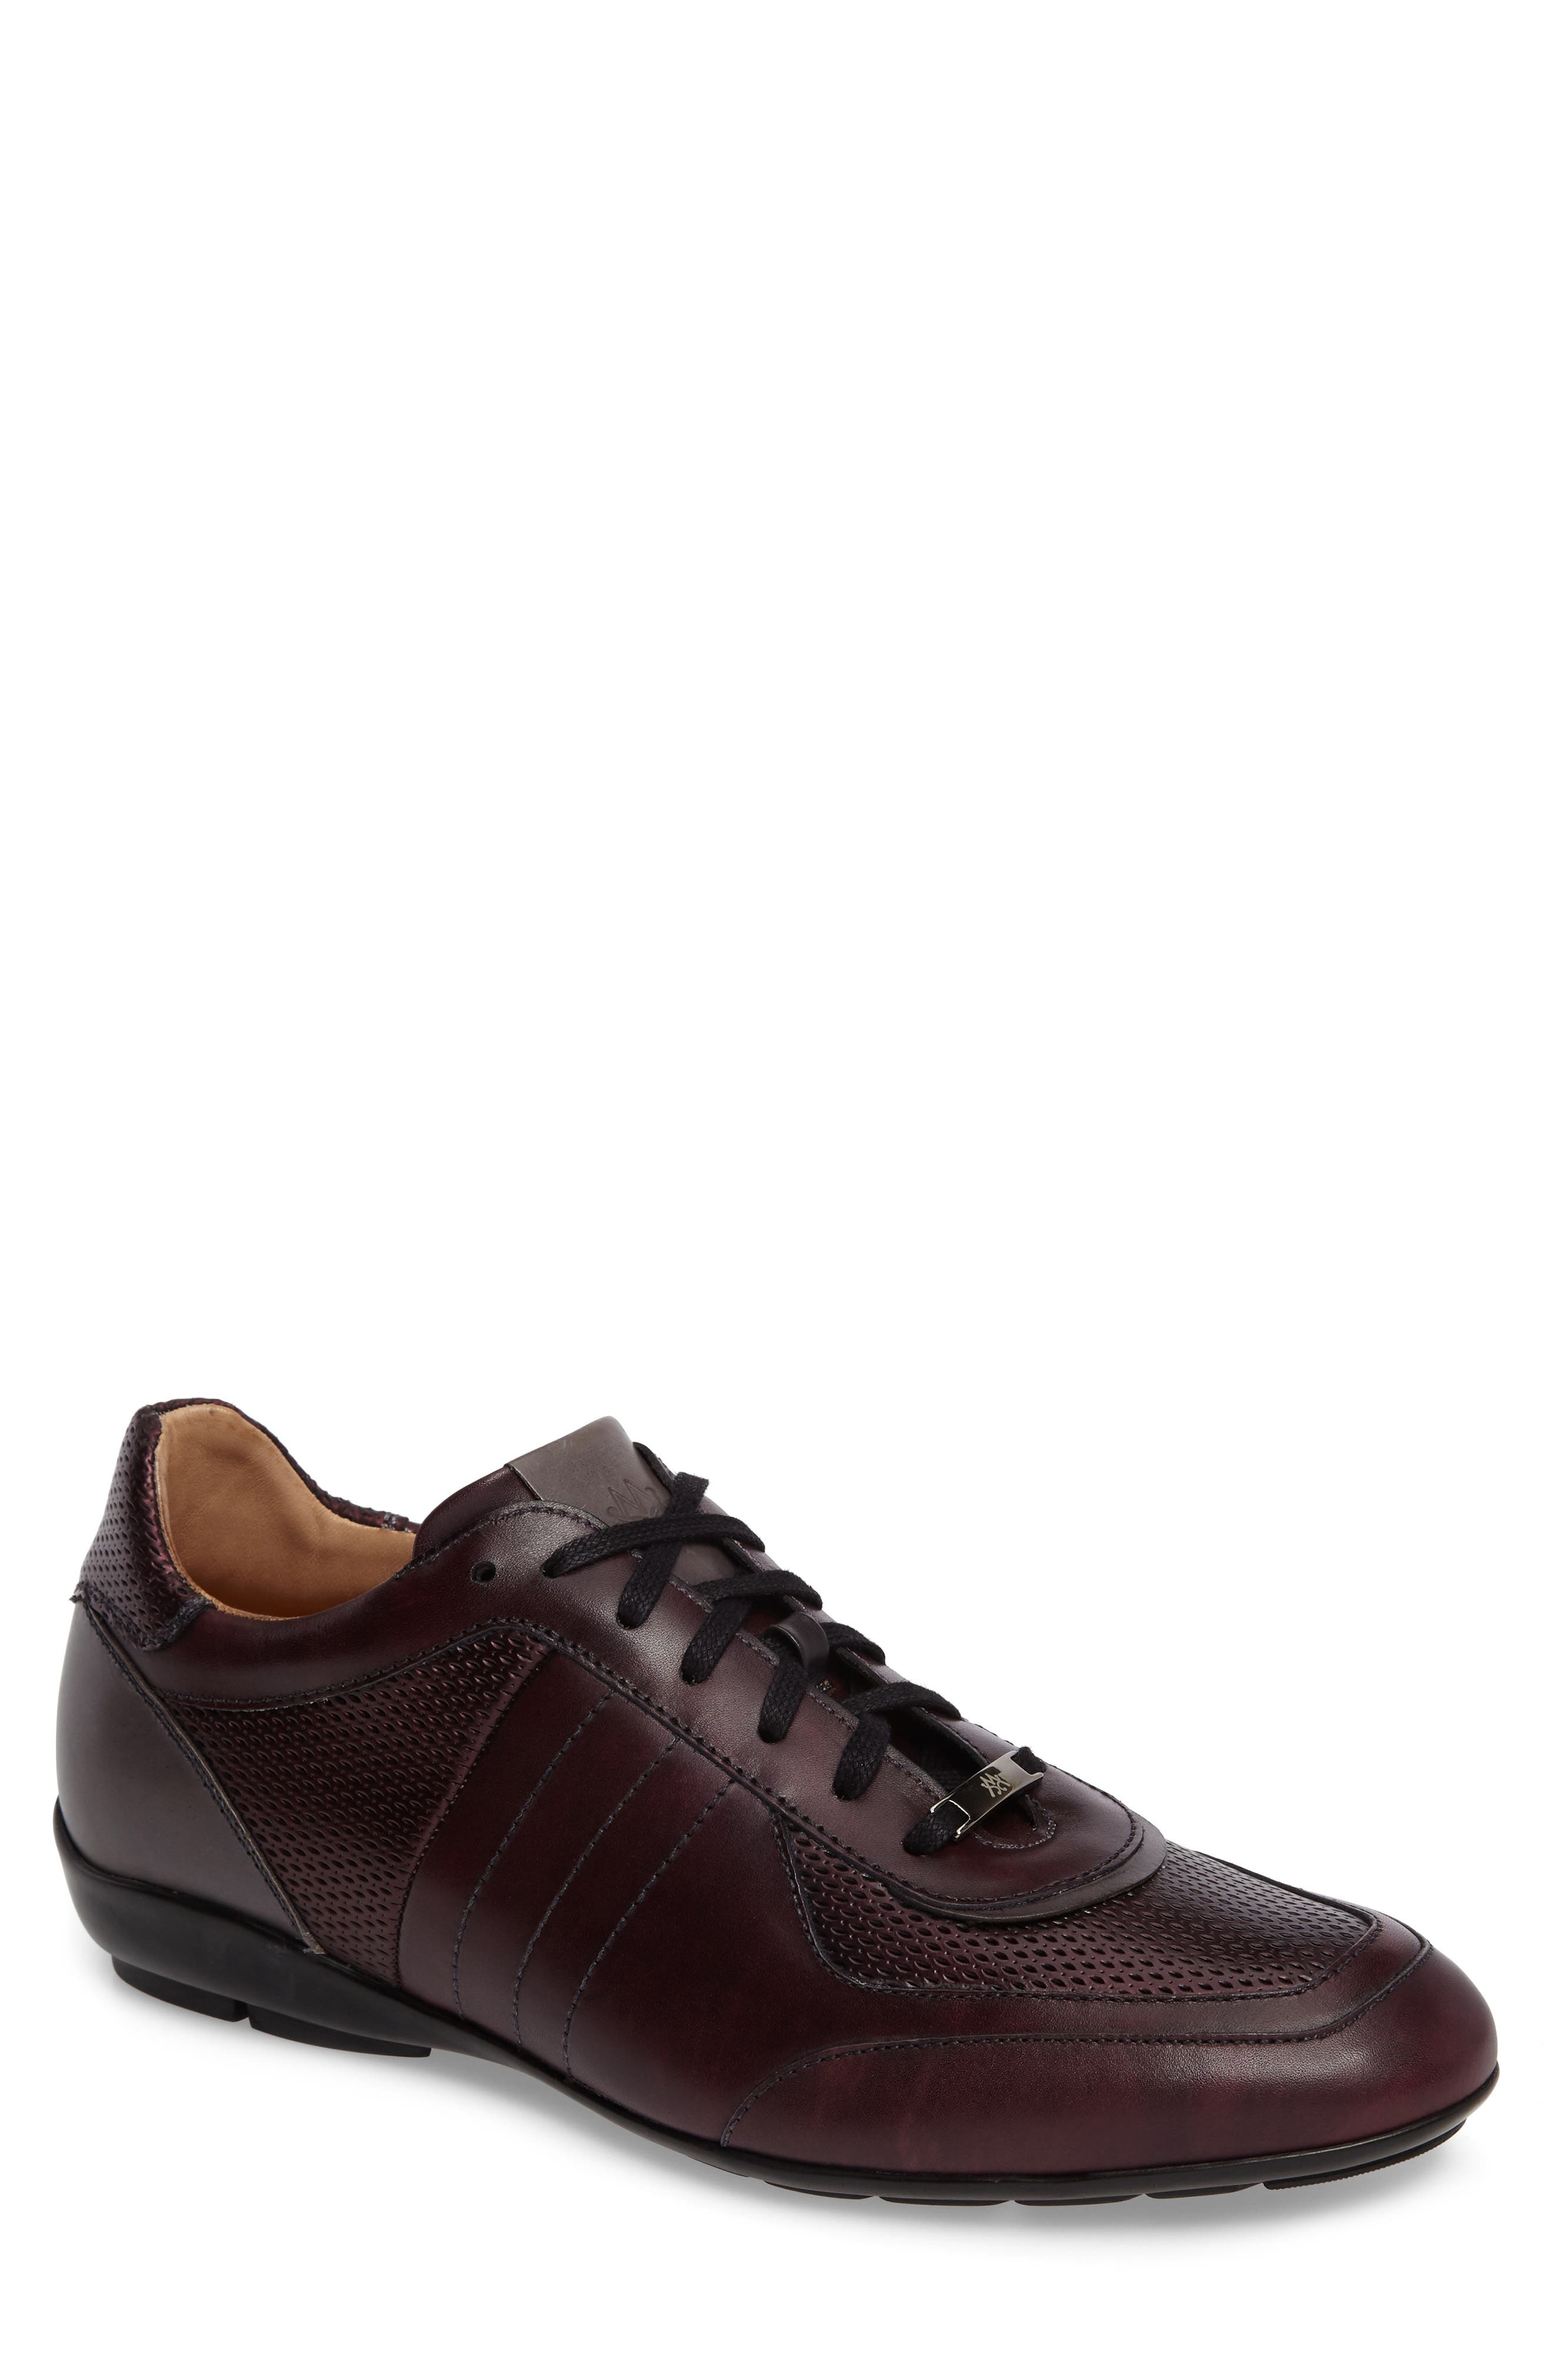 Redon Embossed Sneaker in Burgundy/ Grey Leather